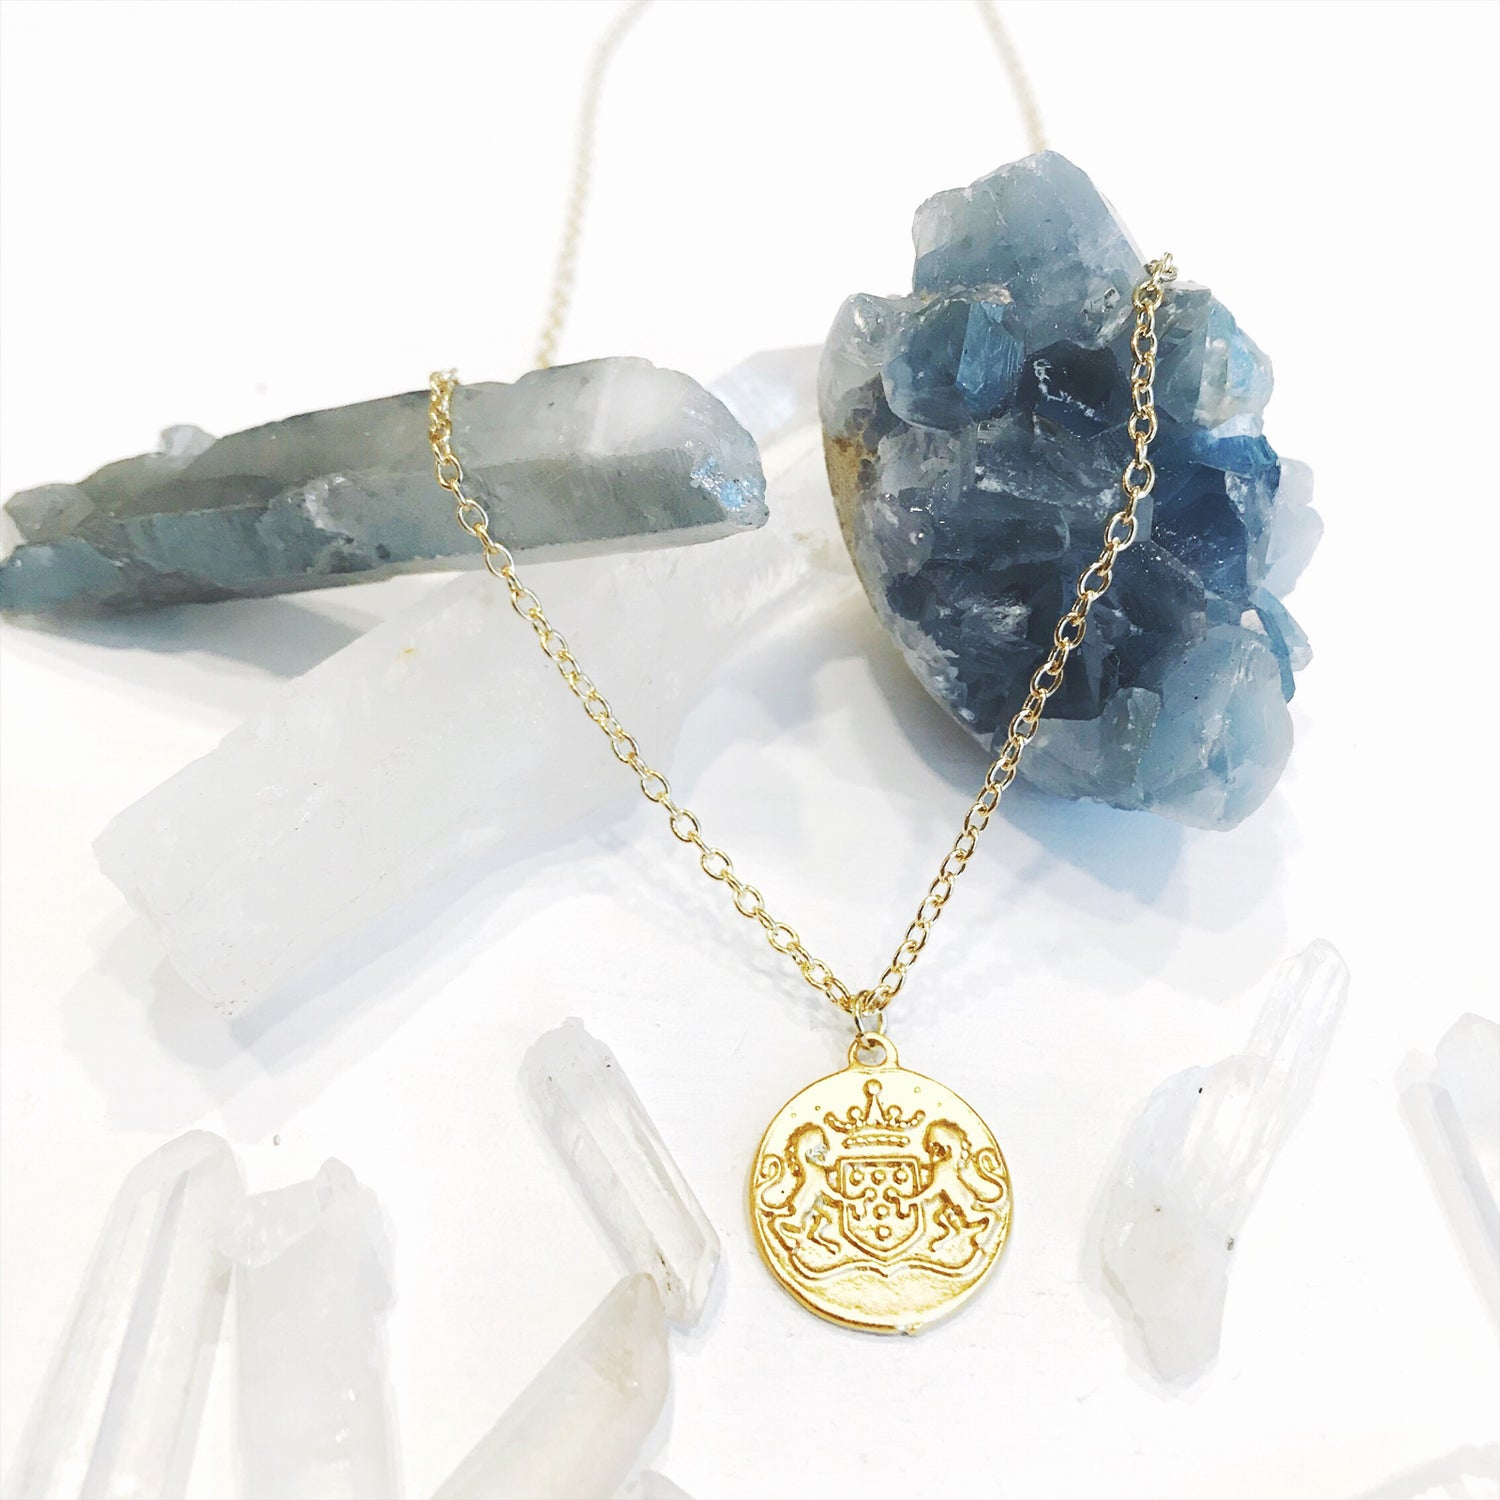 Image of Gold Crest Pendant